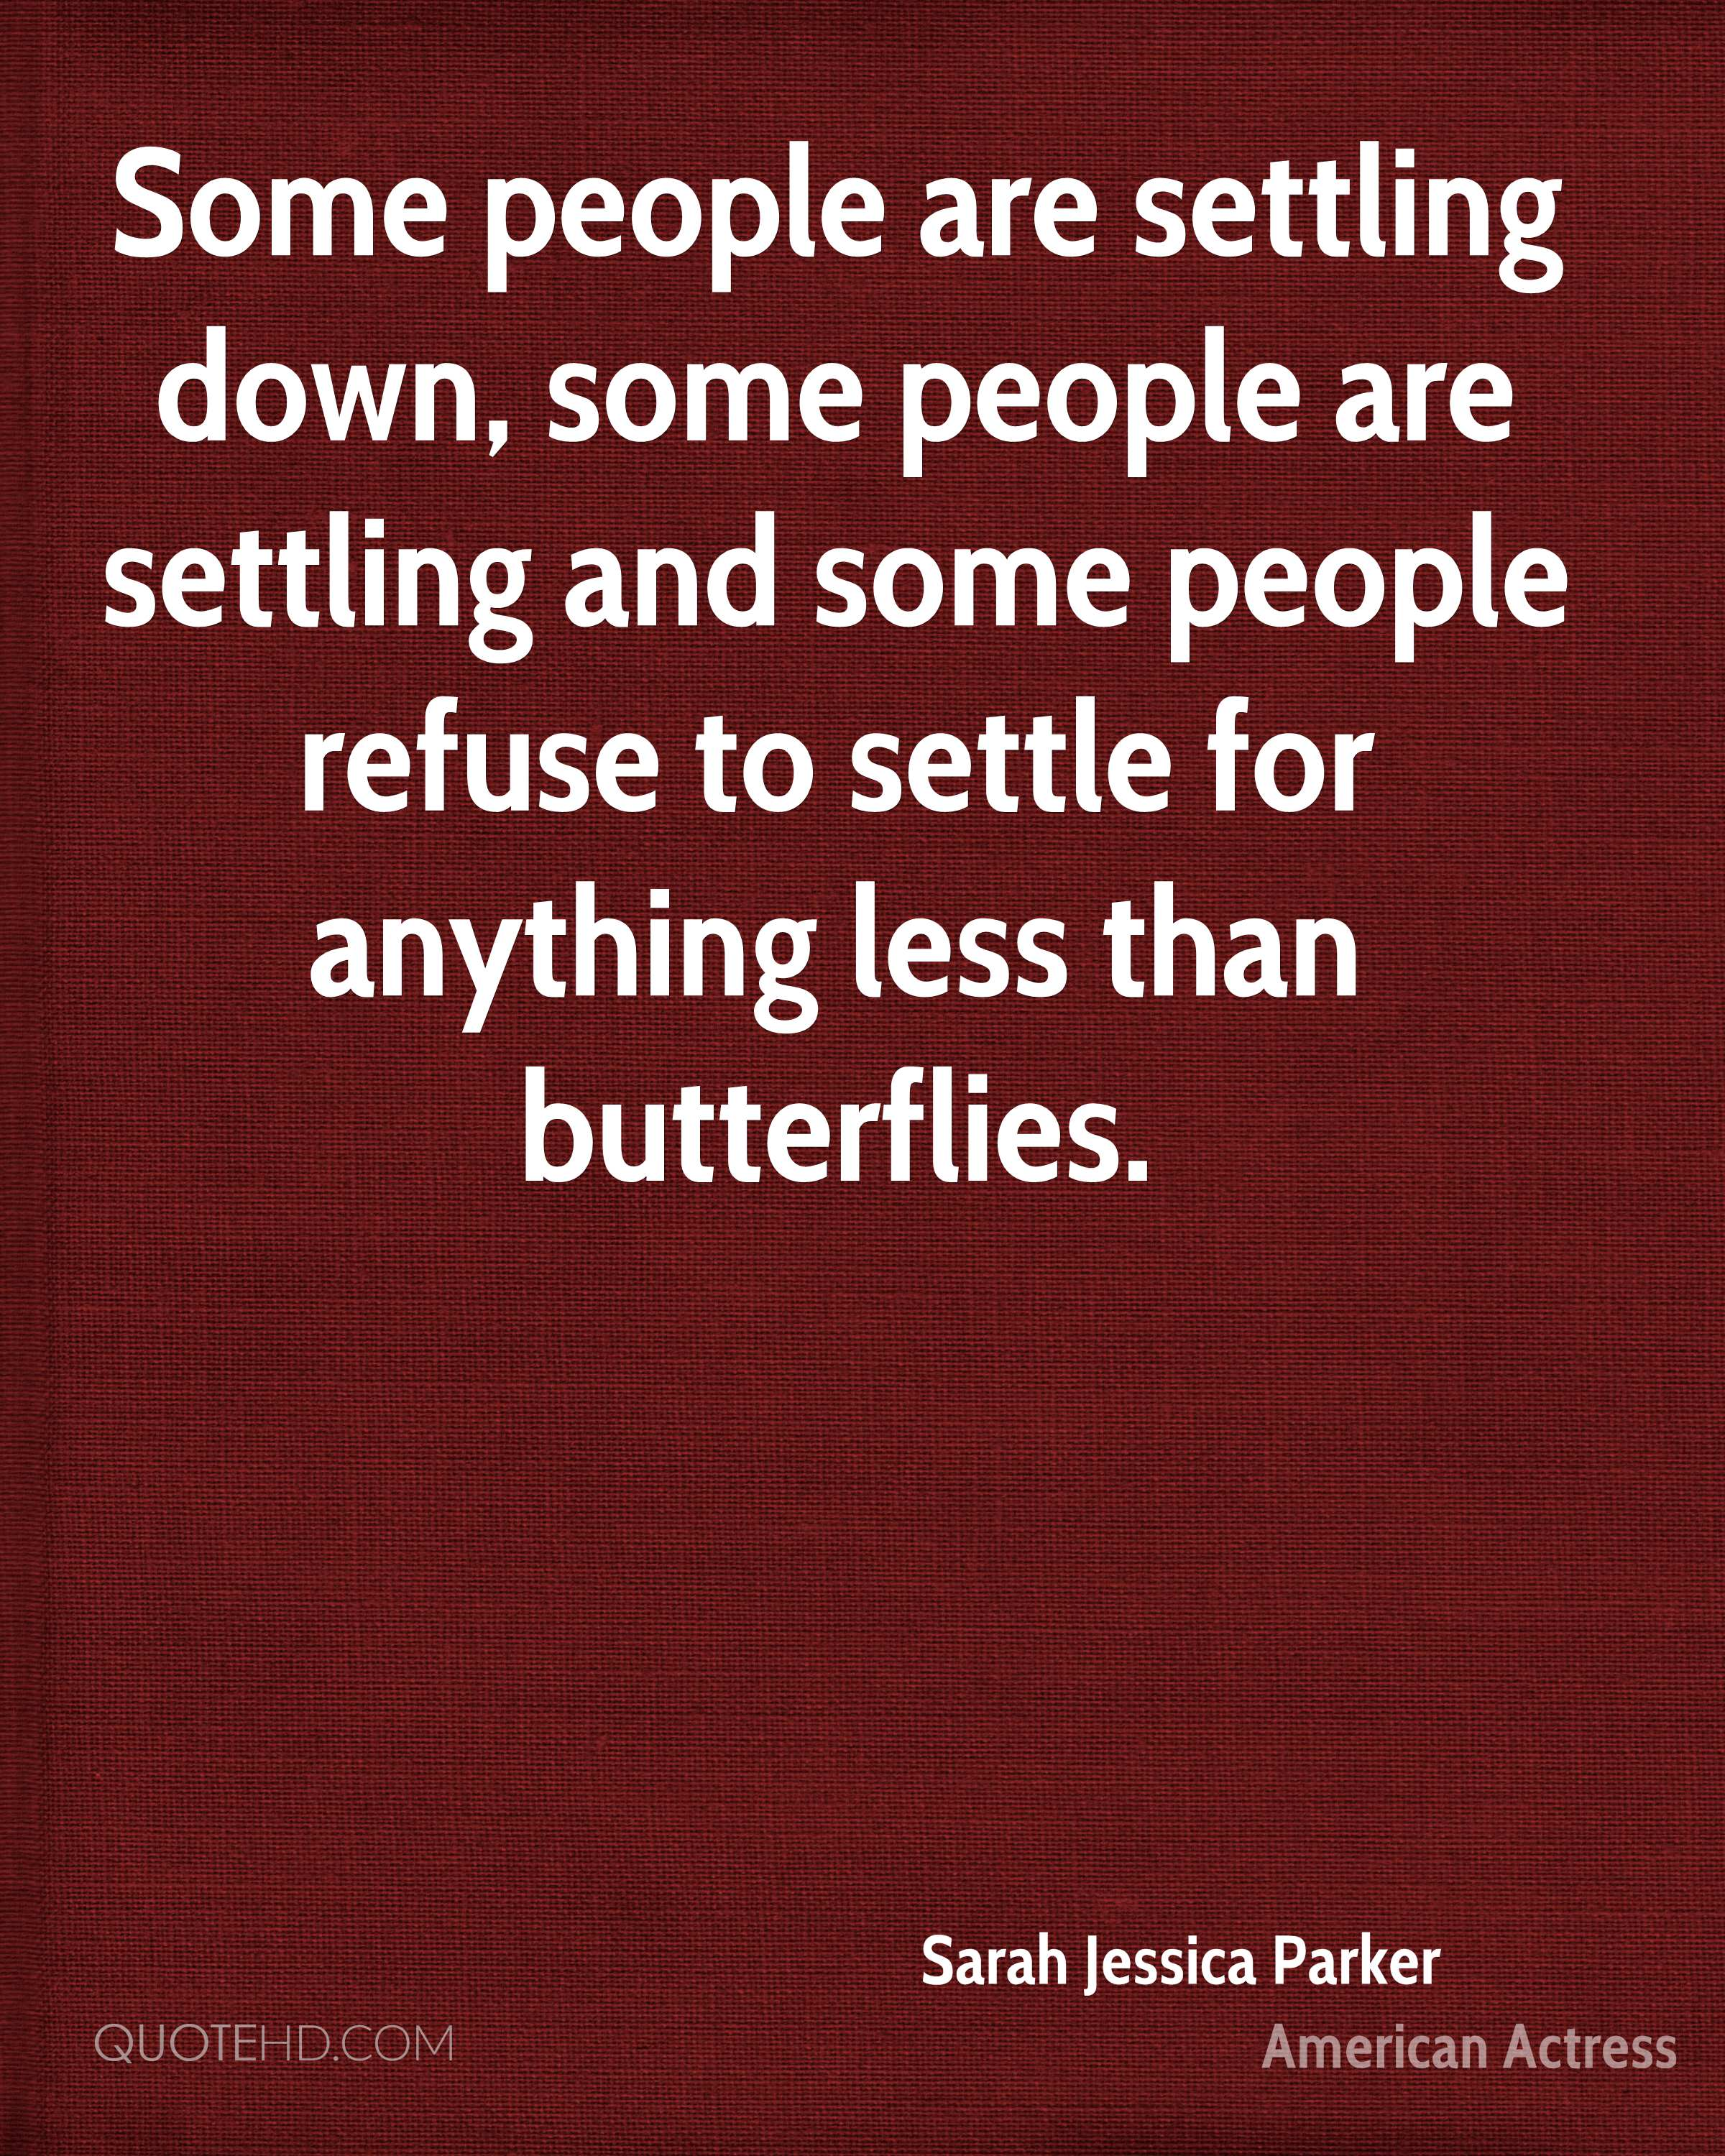 Some people are settling down, some people are settling and some people refuse to settle for anything less than butterflies.